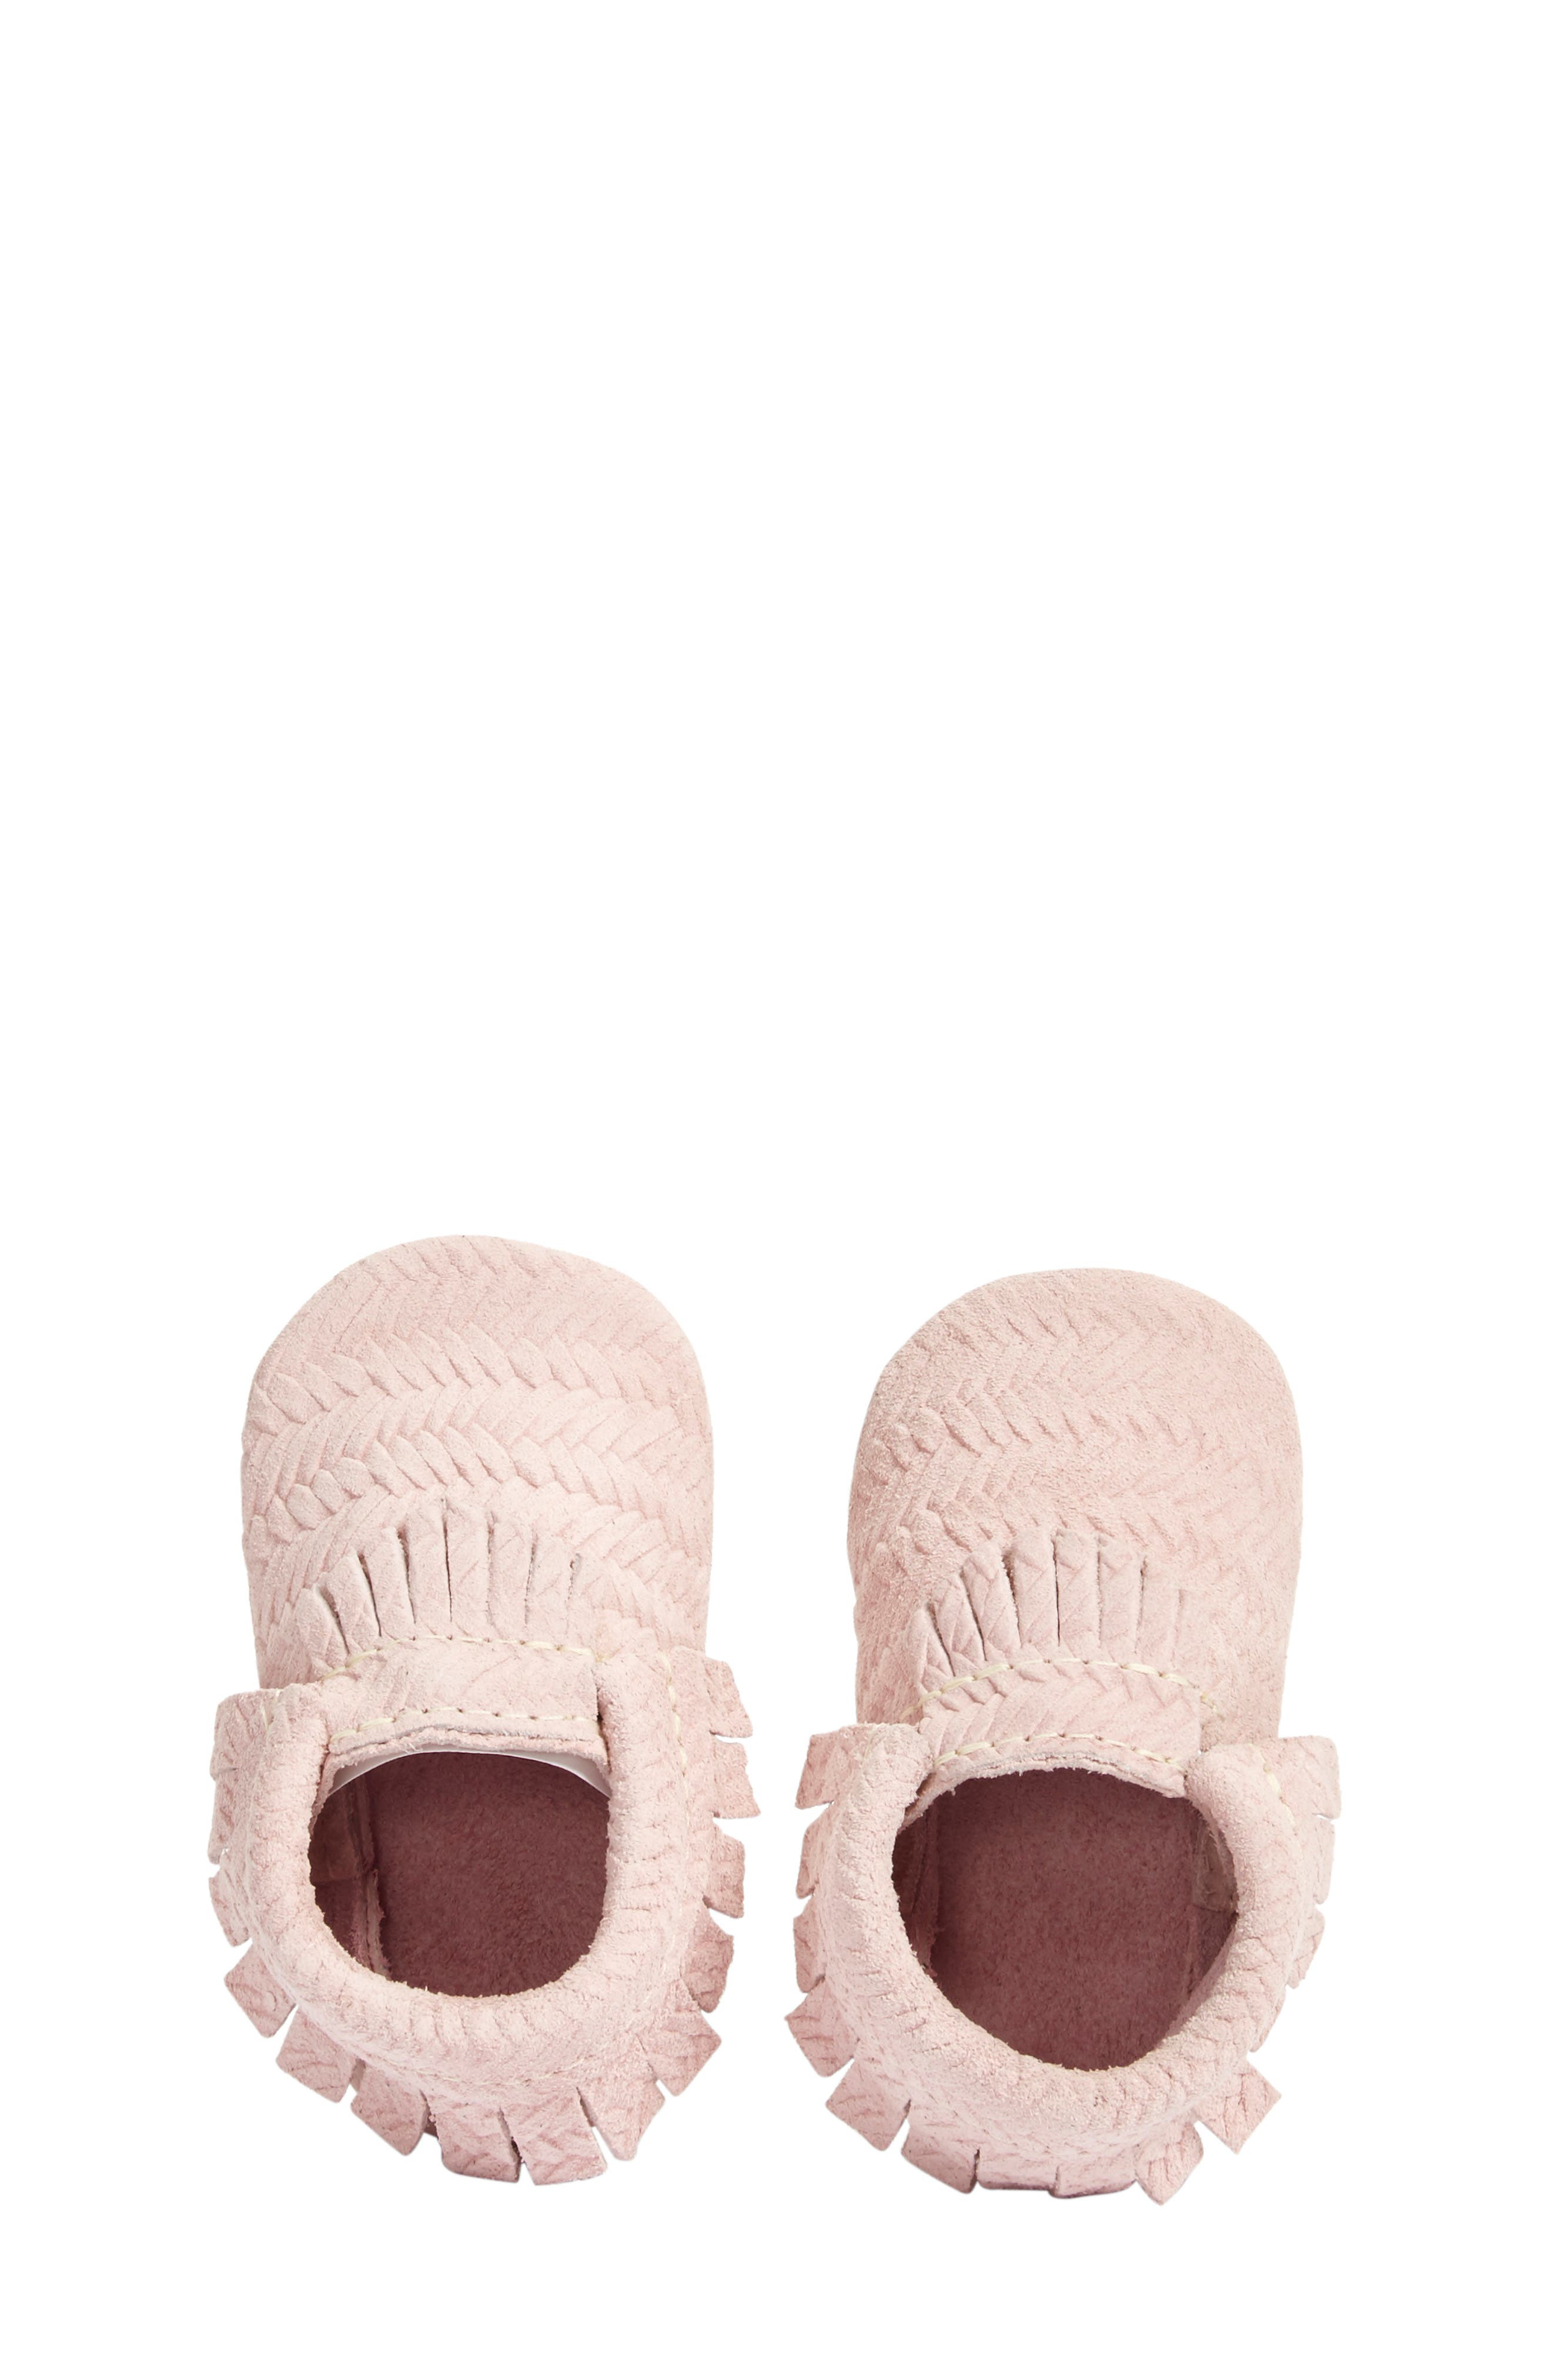 'Cardigan' Woven Leather Moccasin,                             Alternate thumbnail 2, color,                             680